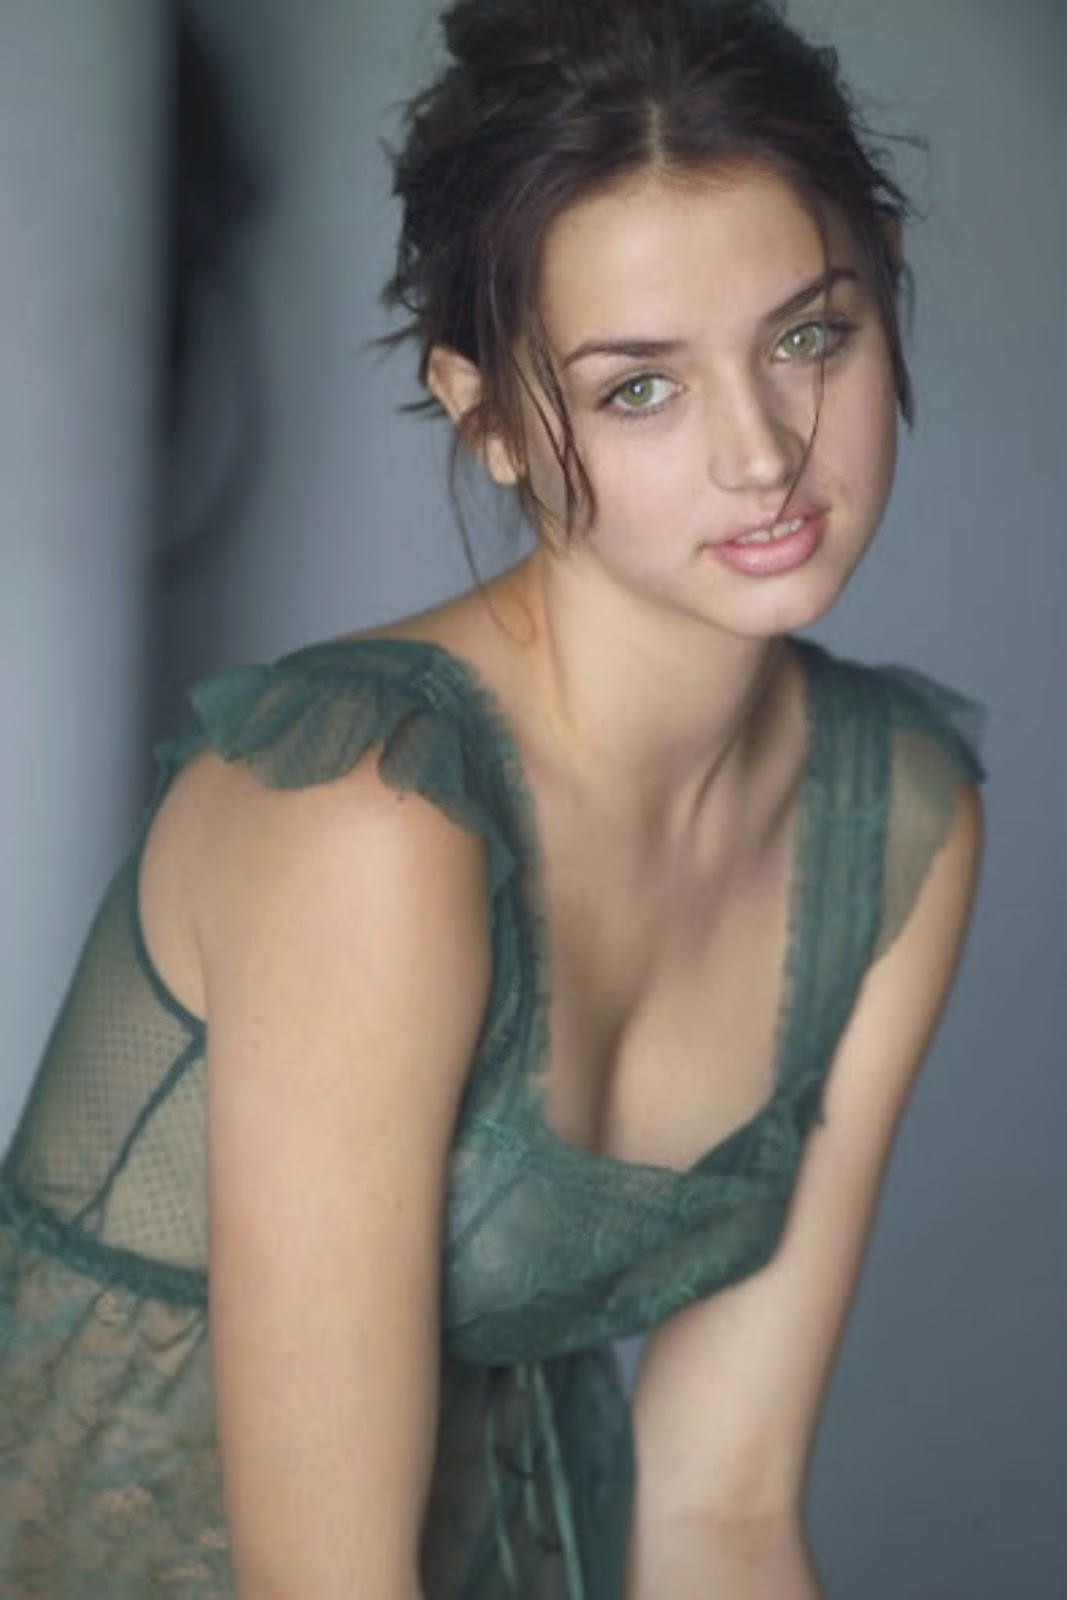 Pleasant Girls Images: Most Beautiful Green Eyes Canadian ...